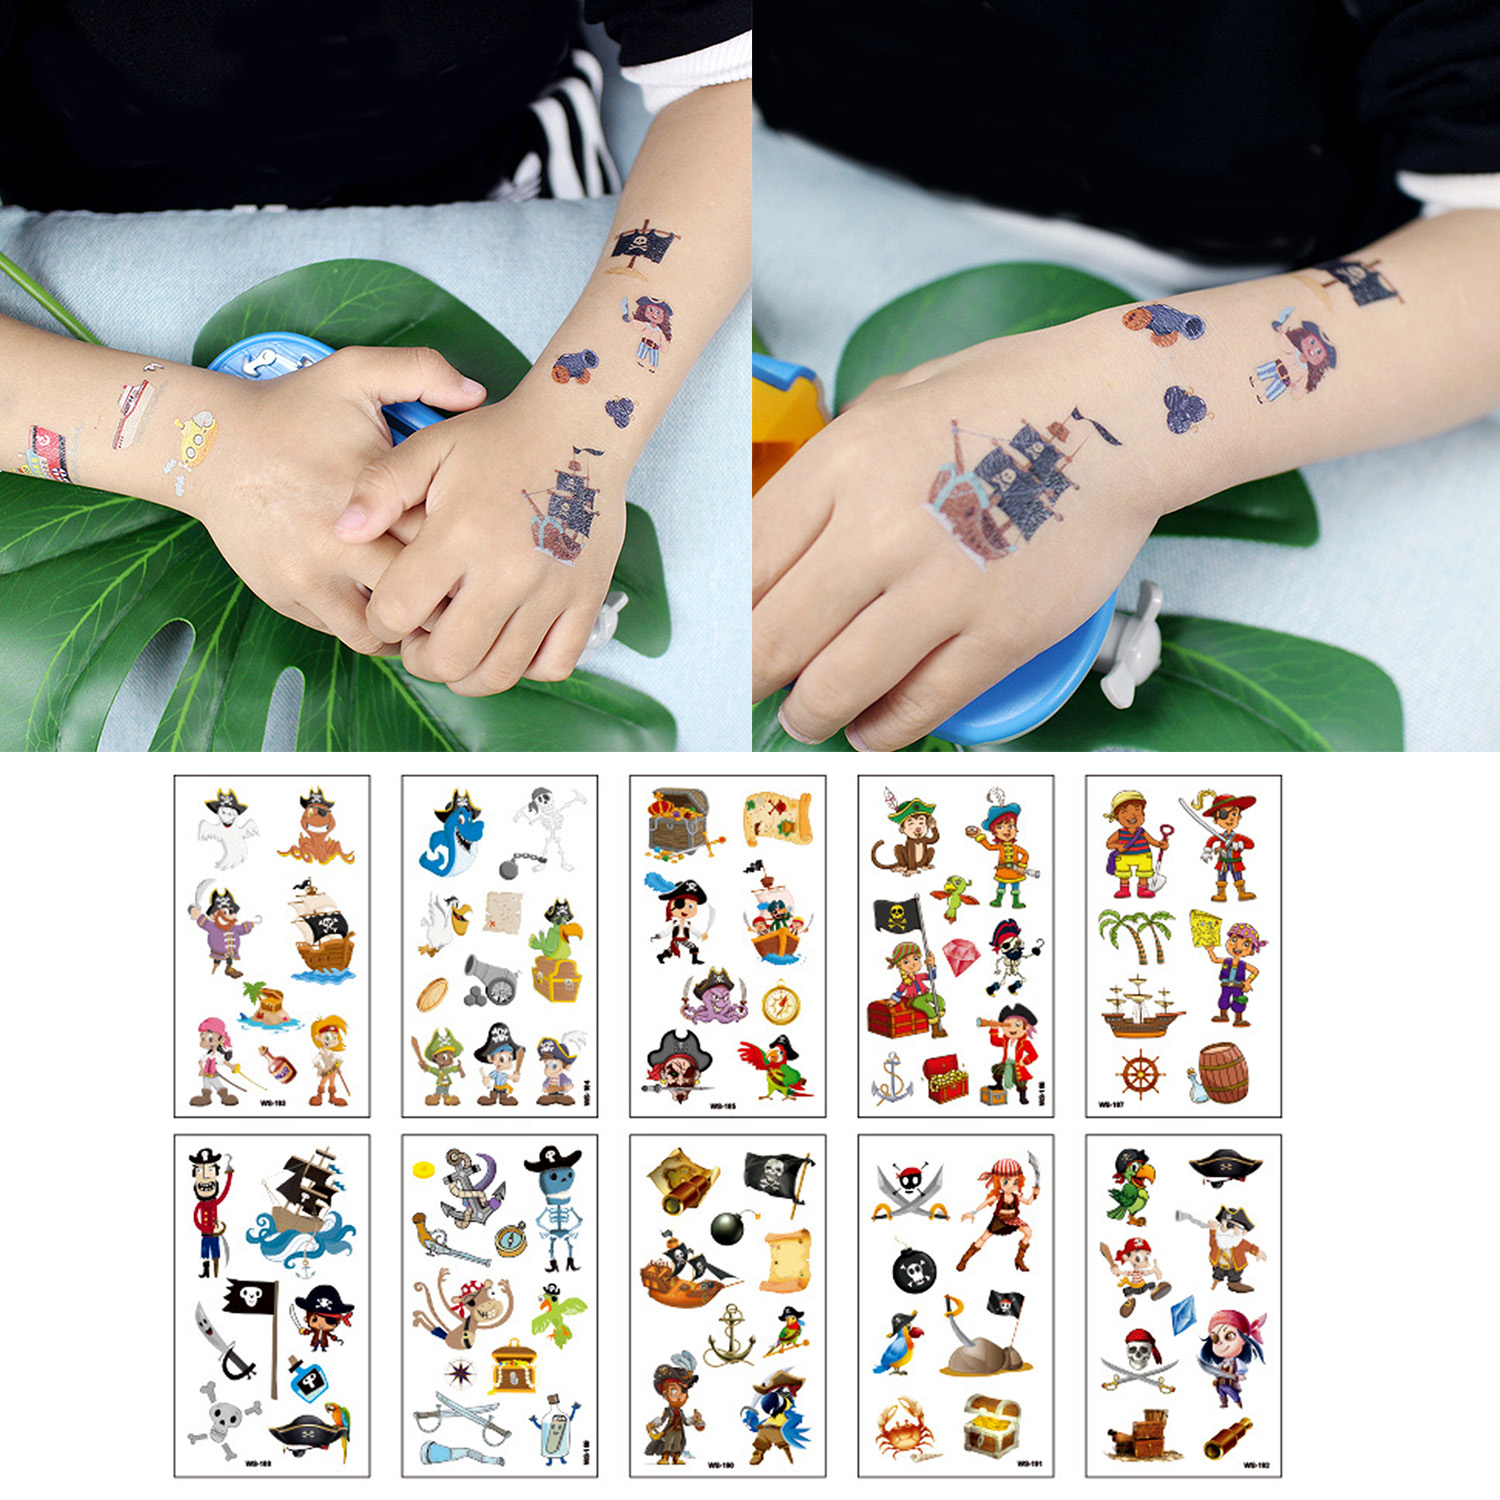 Behogar 10 Sheets Waterproof Pirate Theme Party Temporary Tattoo Stickers For Kids Children Birthday Festival Daily Playing